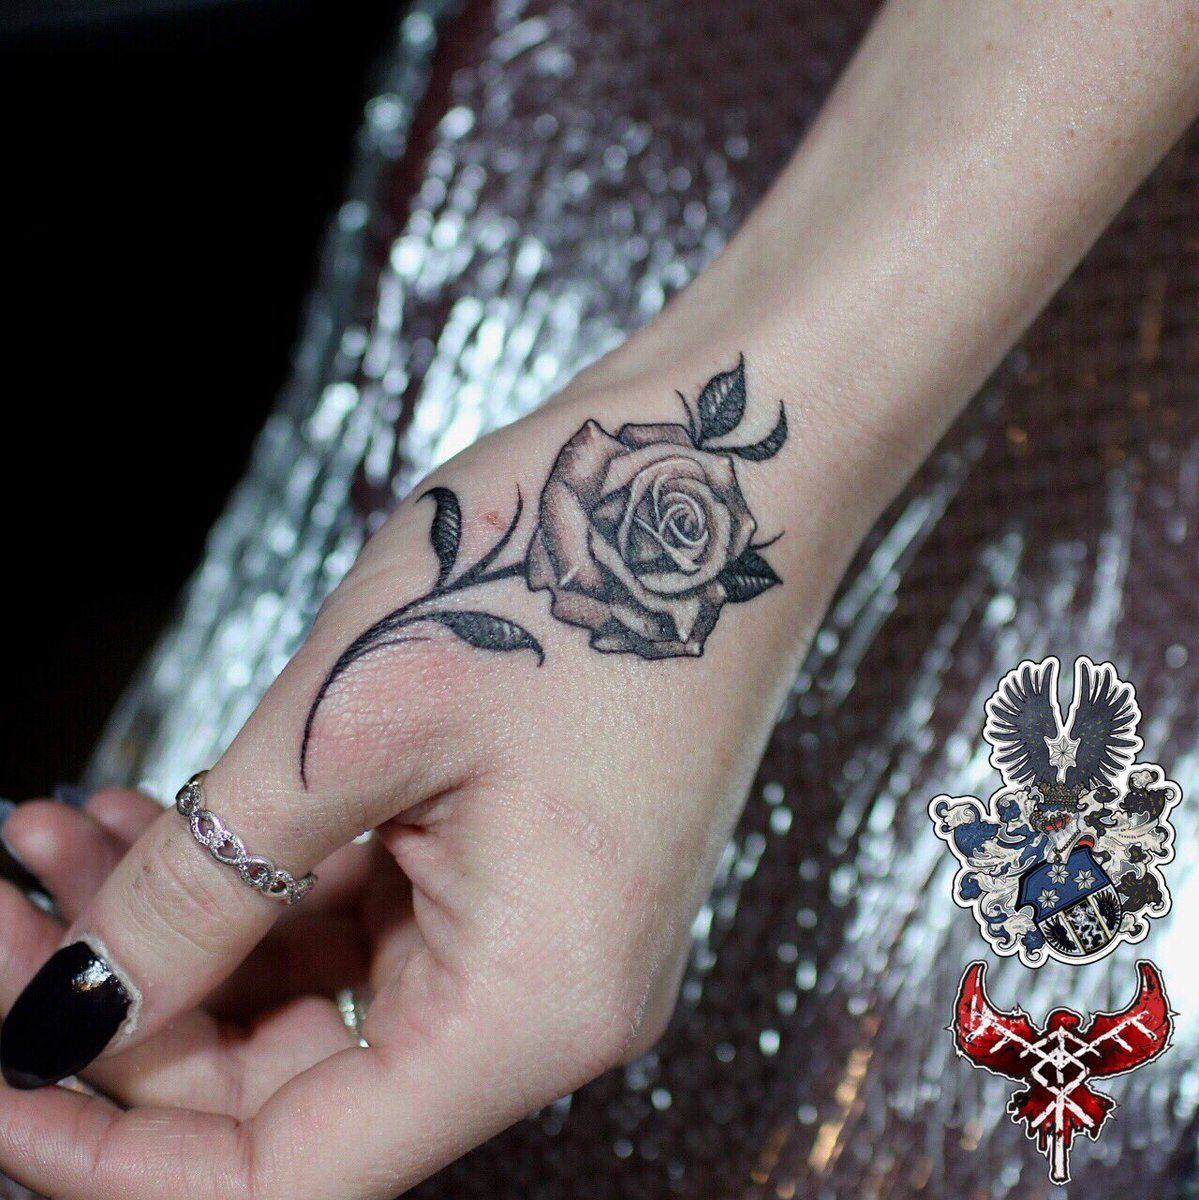 Small Hand Rose Tatto Small Hand Tattoos Hand Tattoos For Women Hand Tattoos